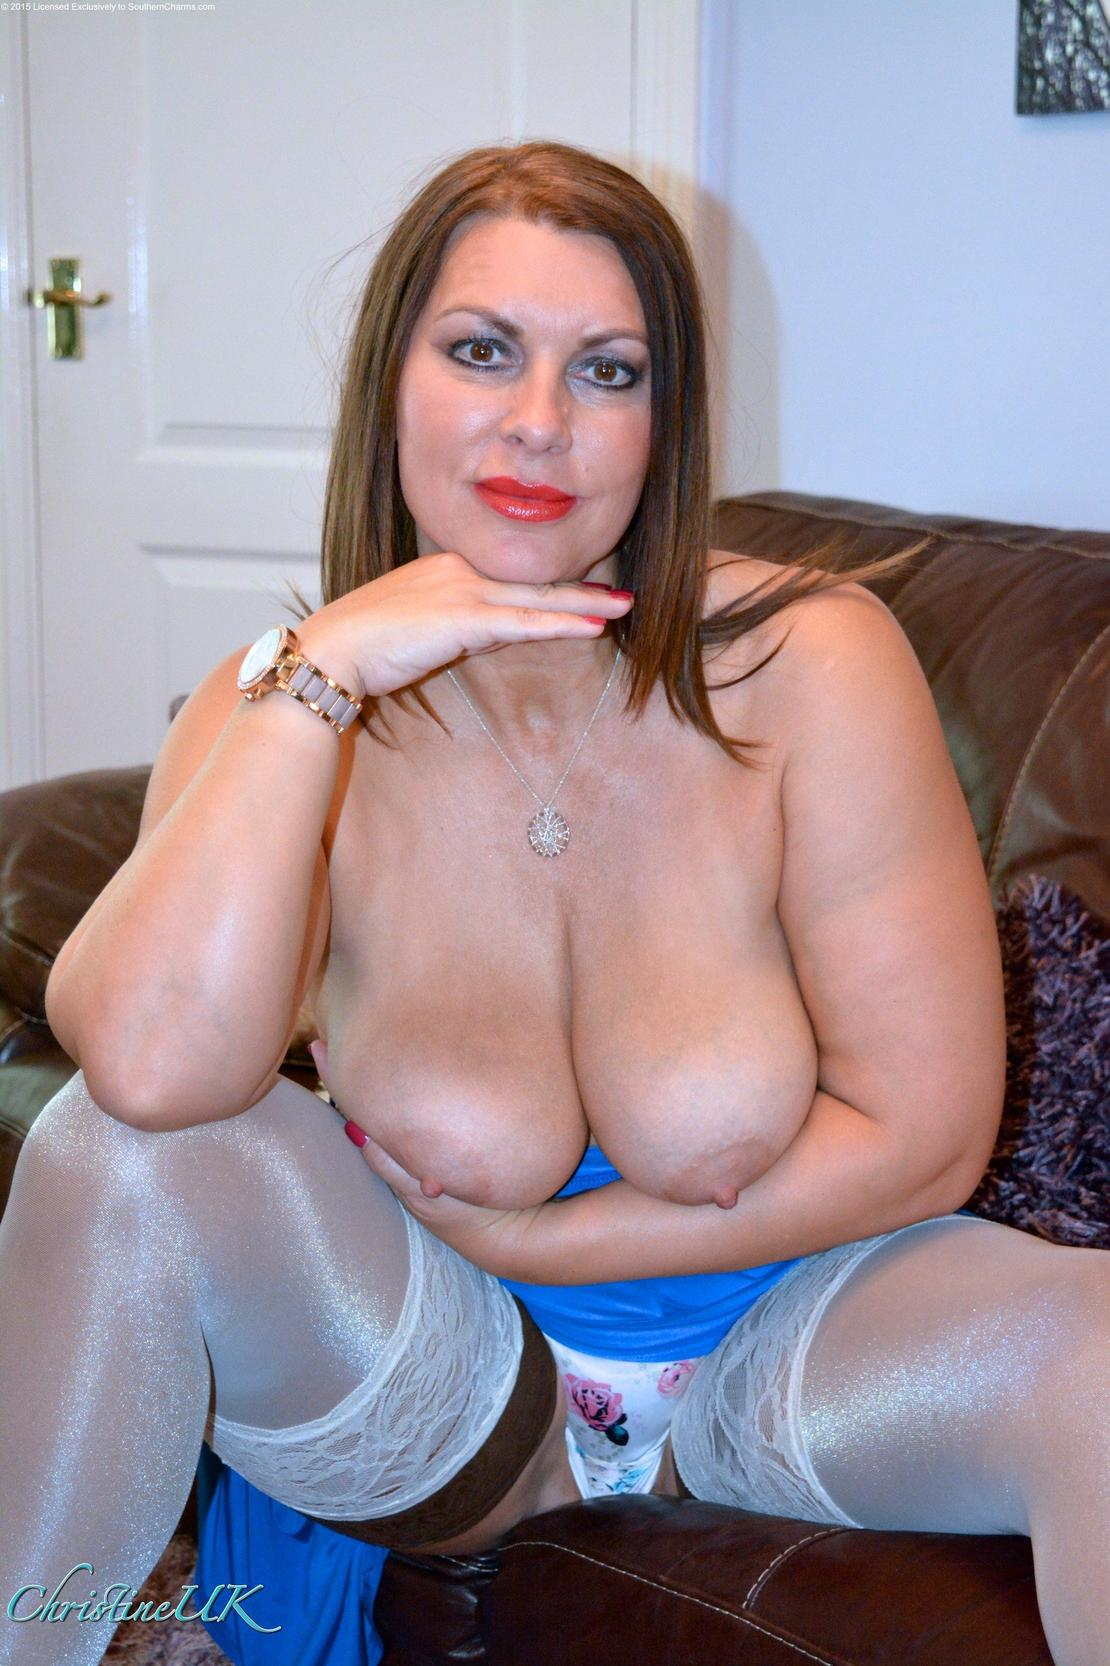 Lesbian on southern charms